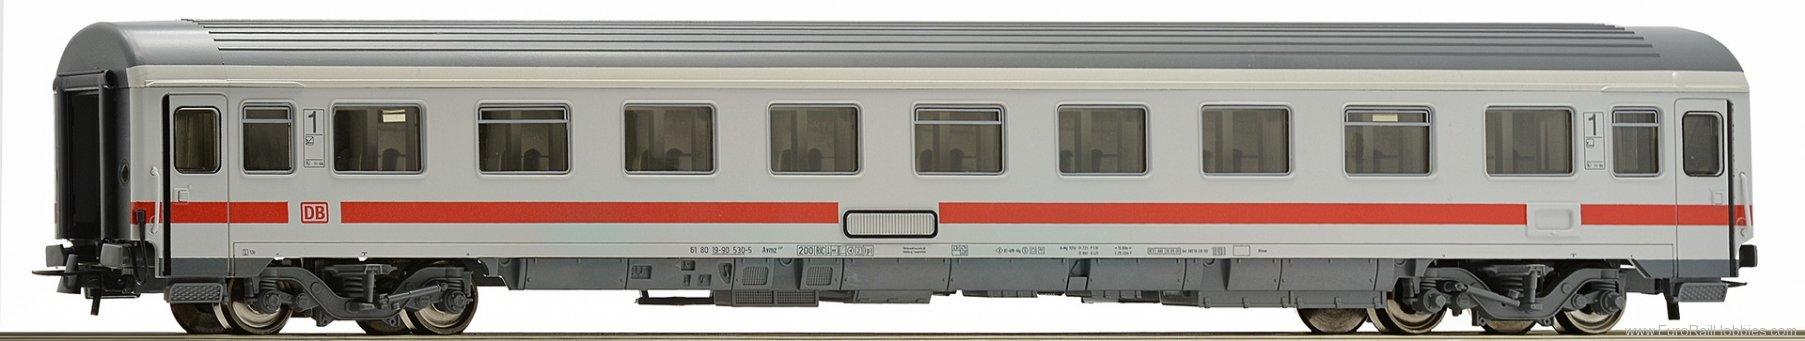 Roco 54260 1st class compartment car, DB AG